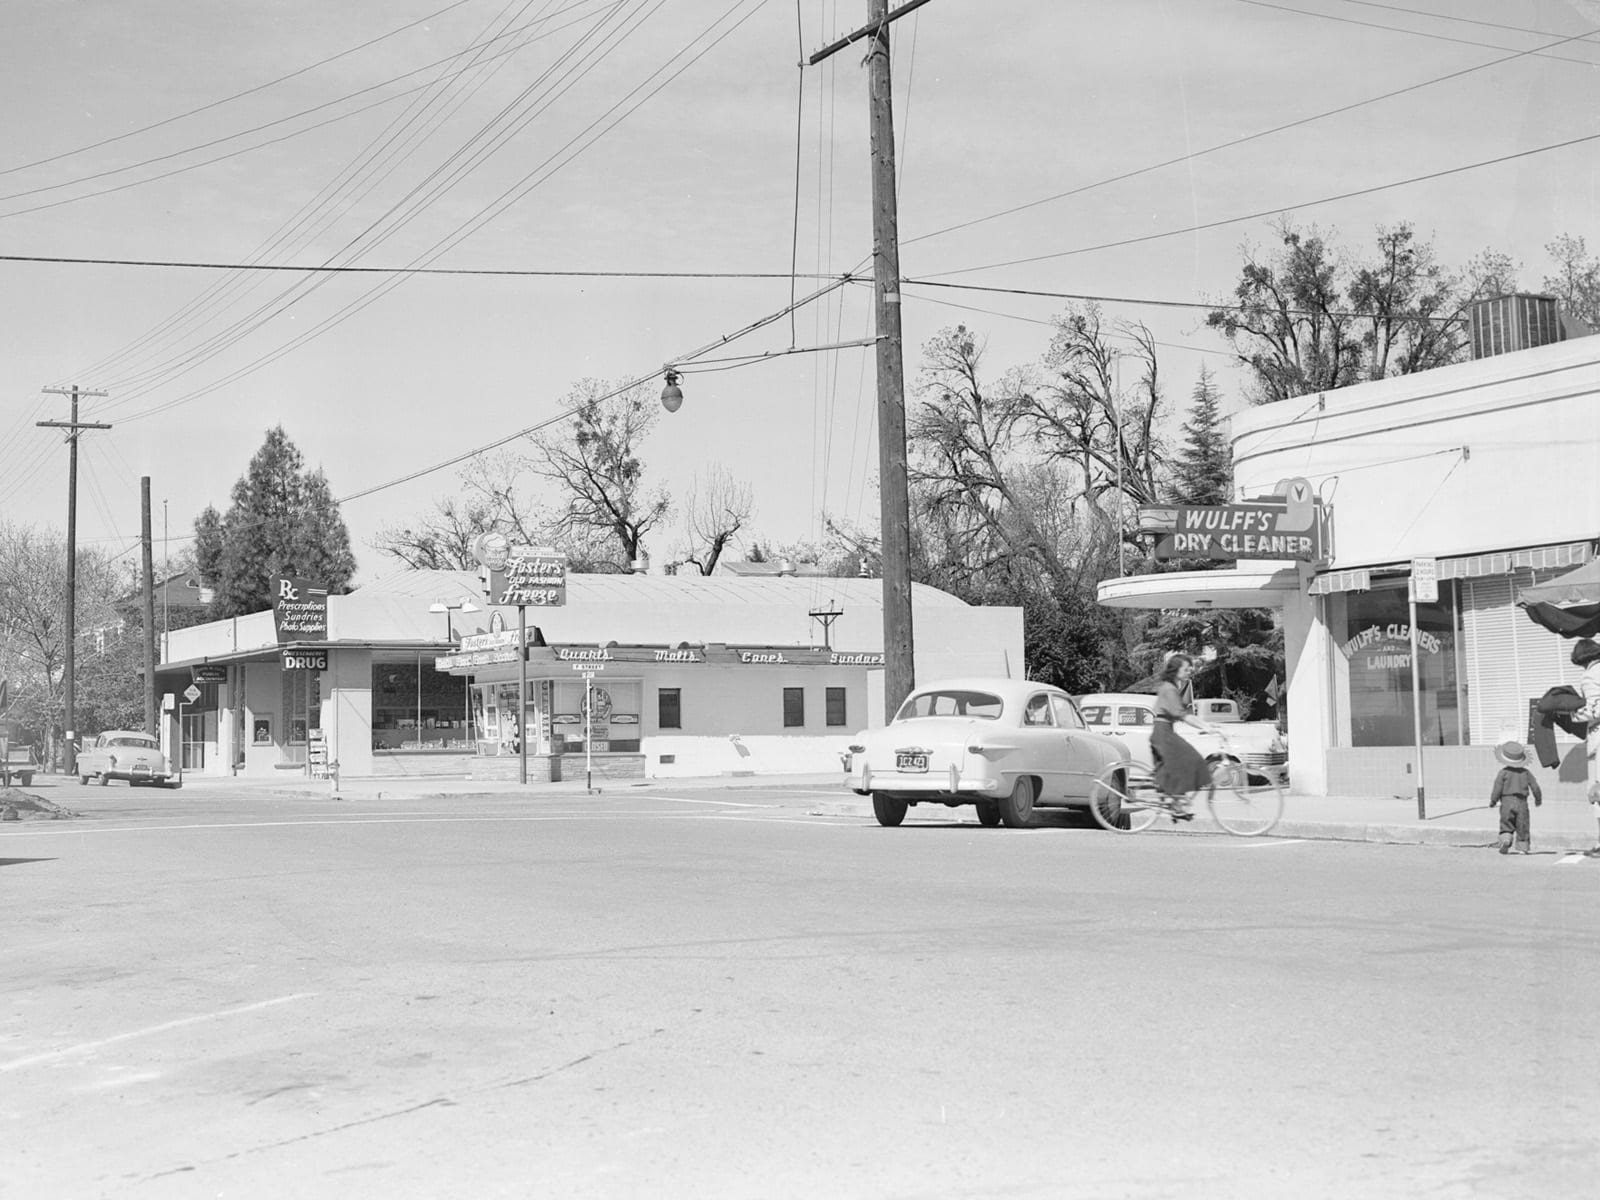 Second Street at F Street, looking northwest, 1951